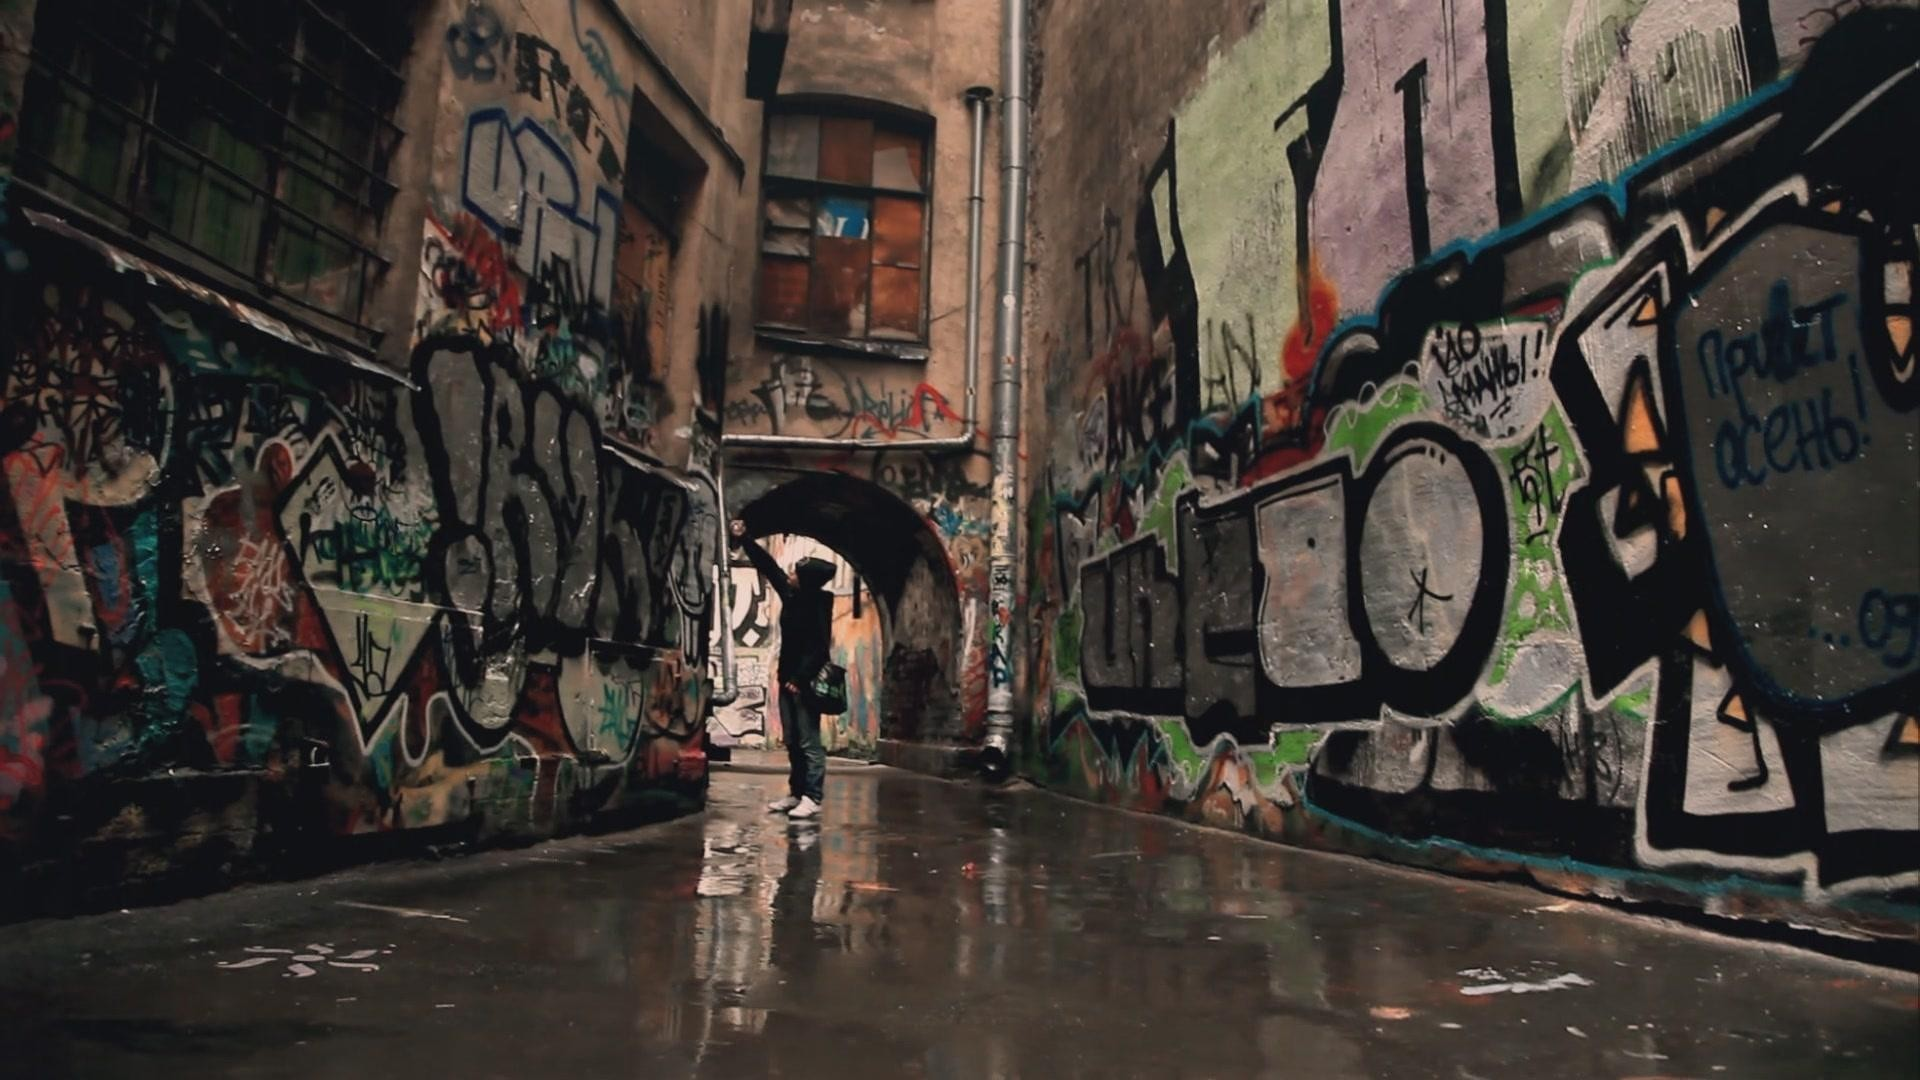 graffiti wallpapers high quality download free with graffiti wallpaper.